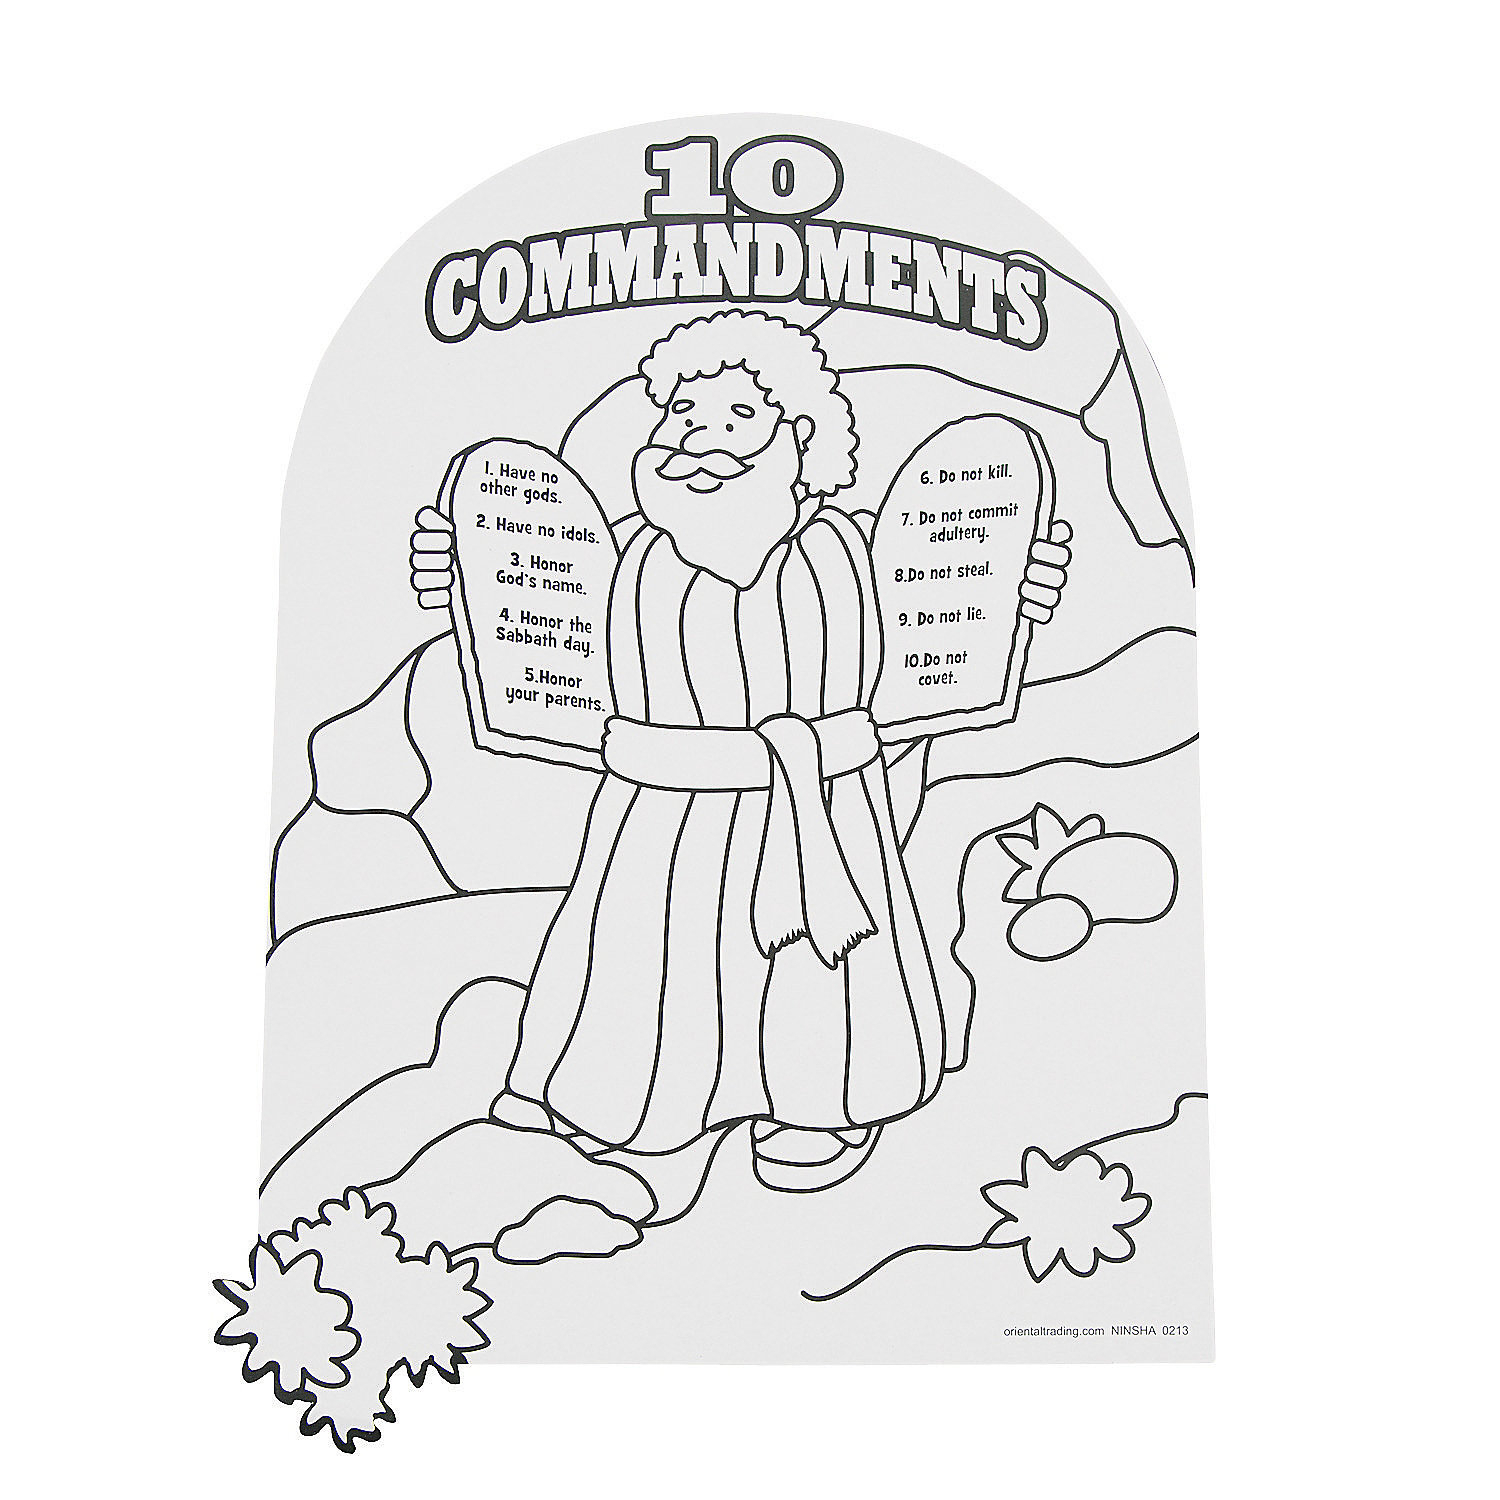 10 Commandments Coloring Pages 10 Commandments Coloring Pages Free